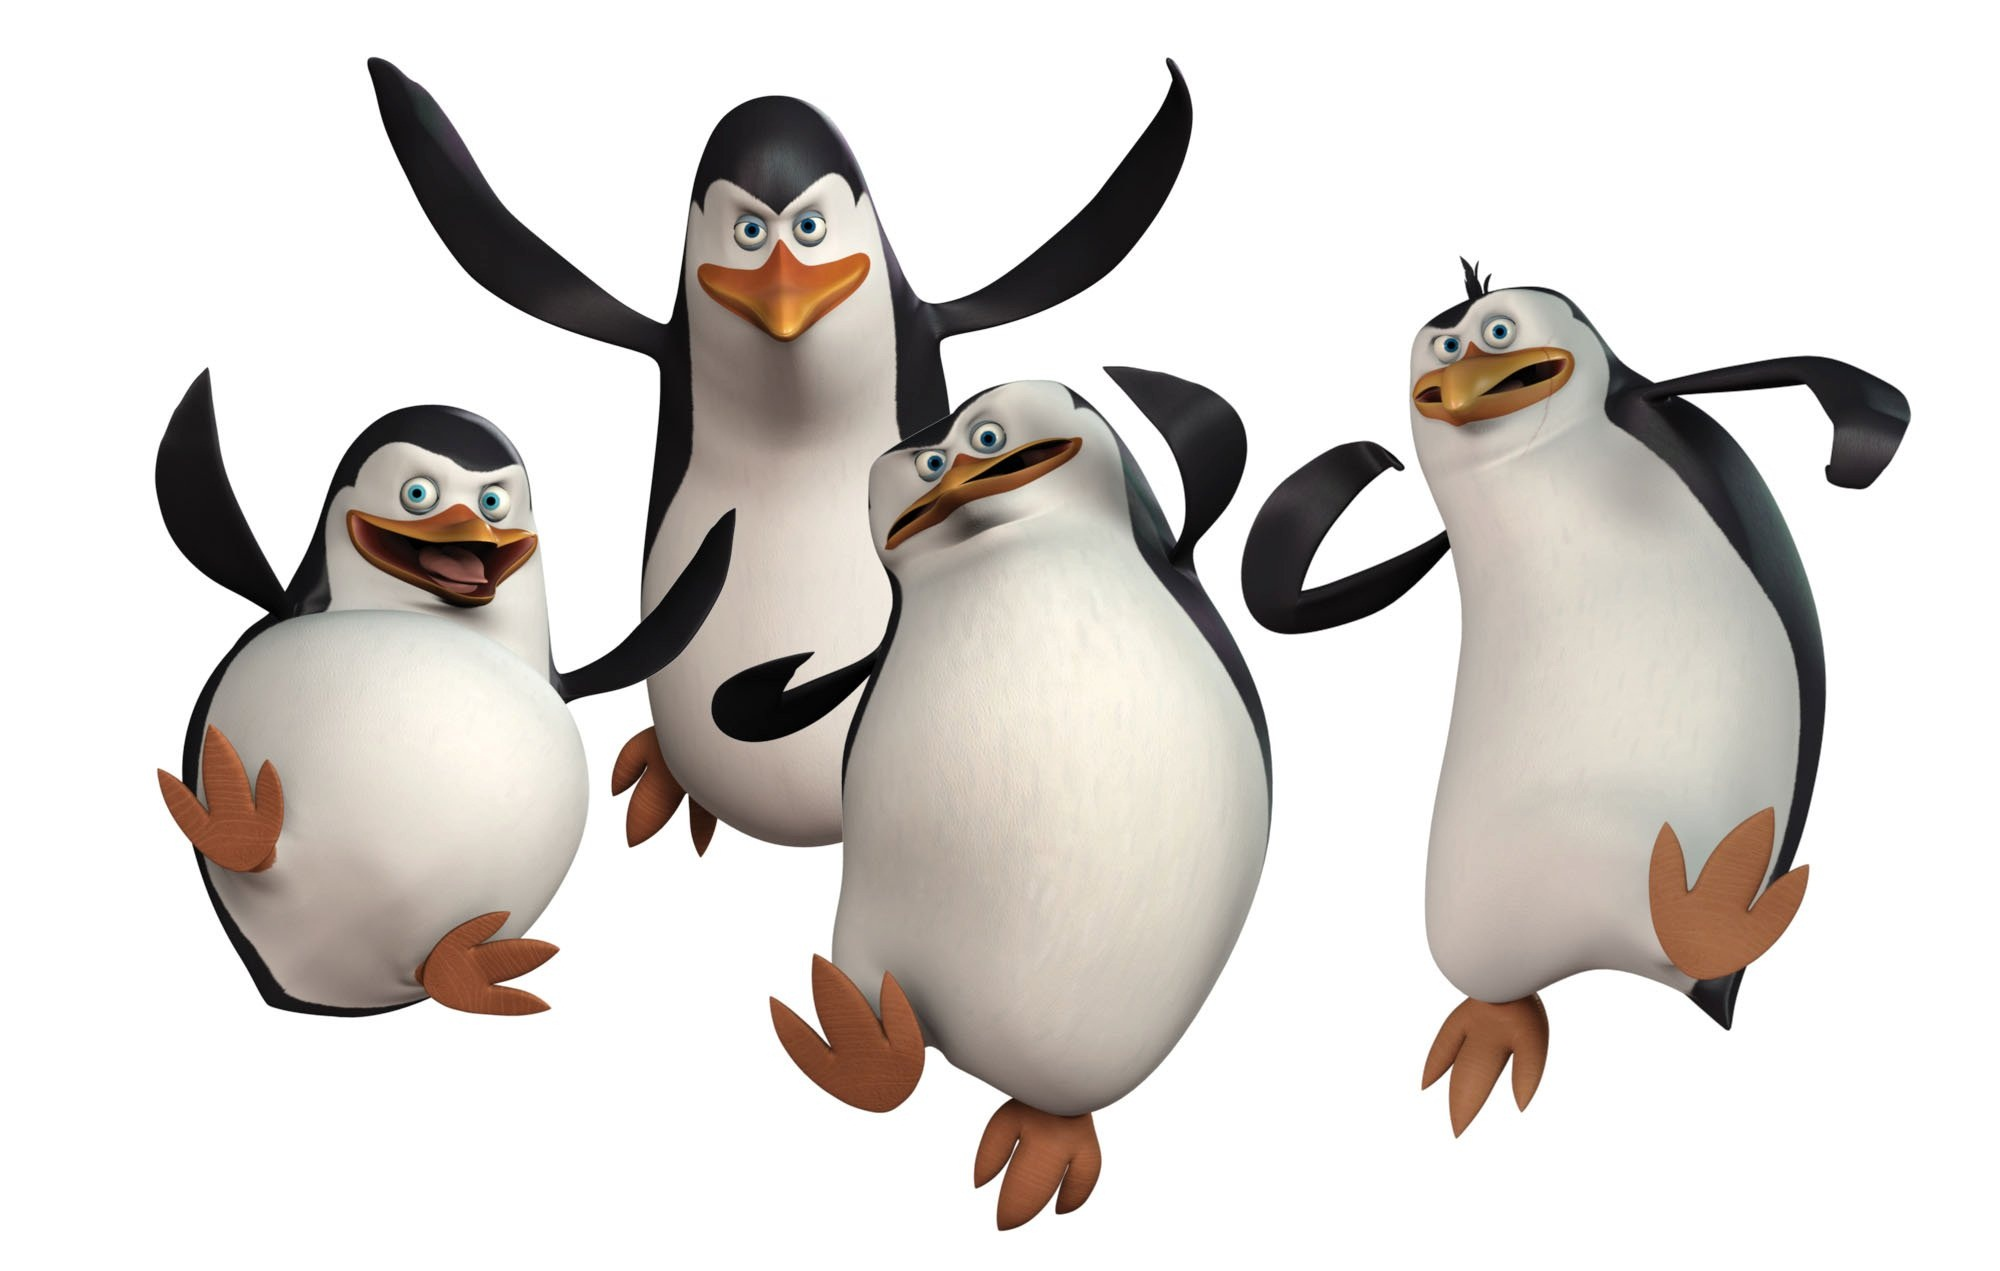 65 penguins of madagascar hd wallpapers | background images